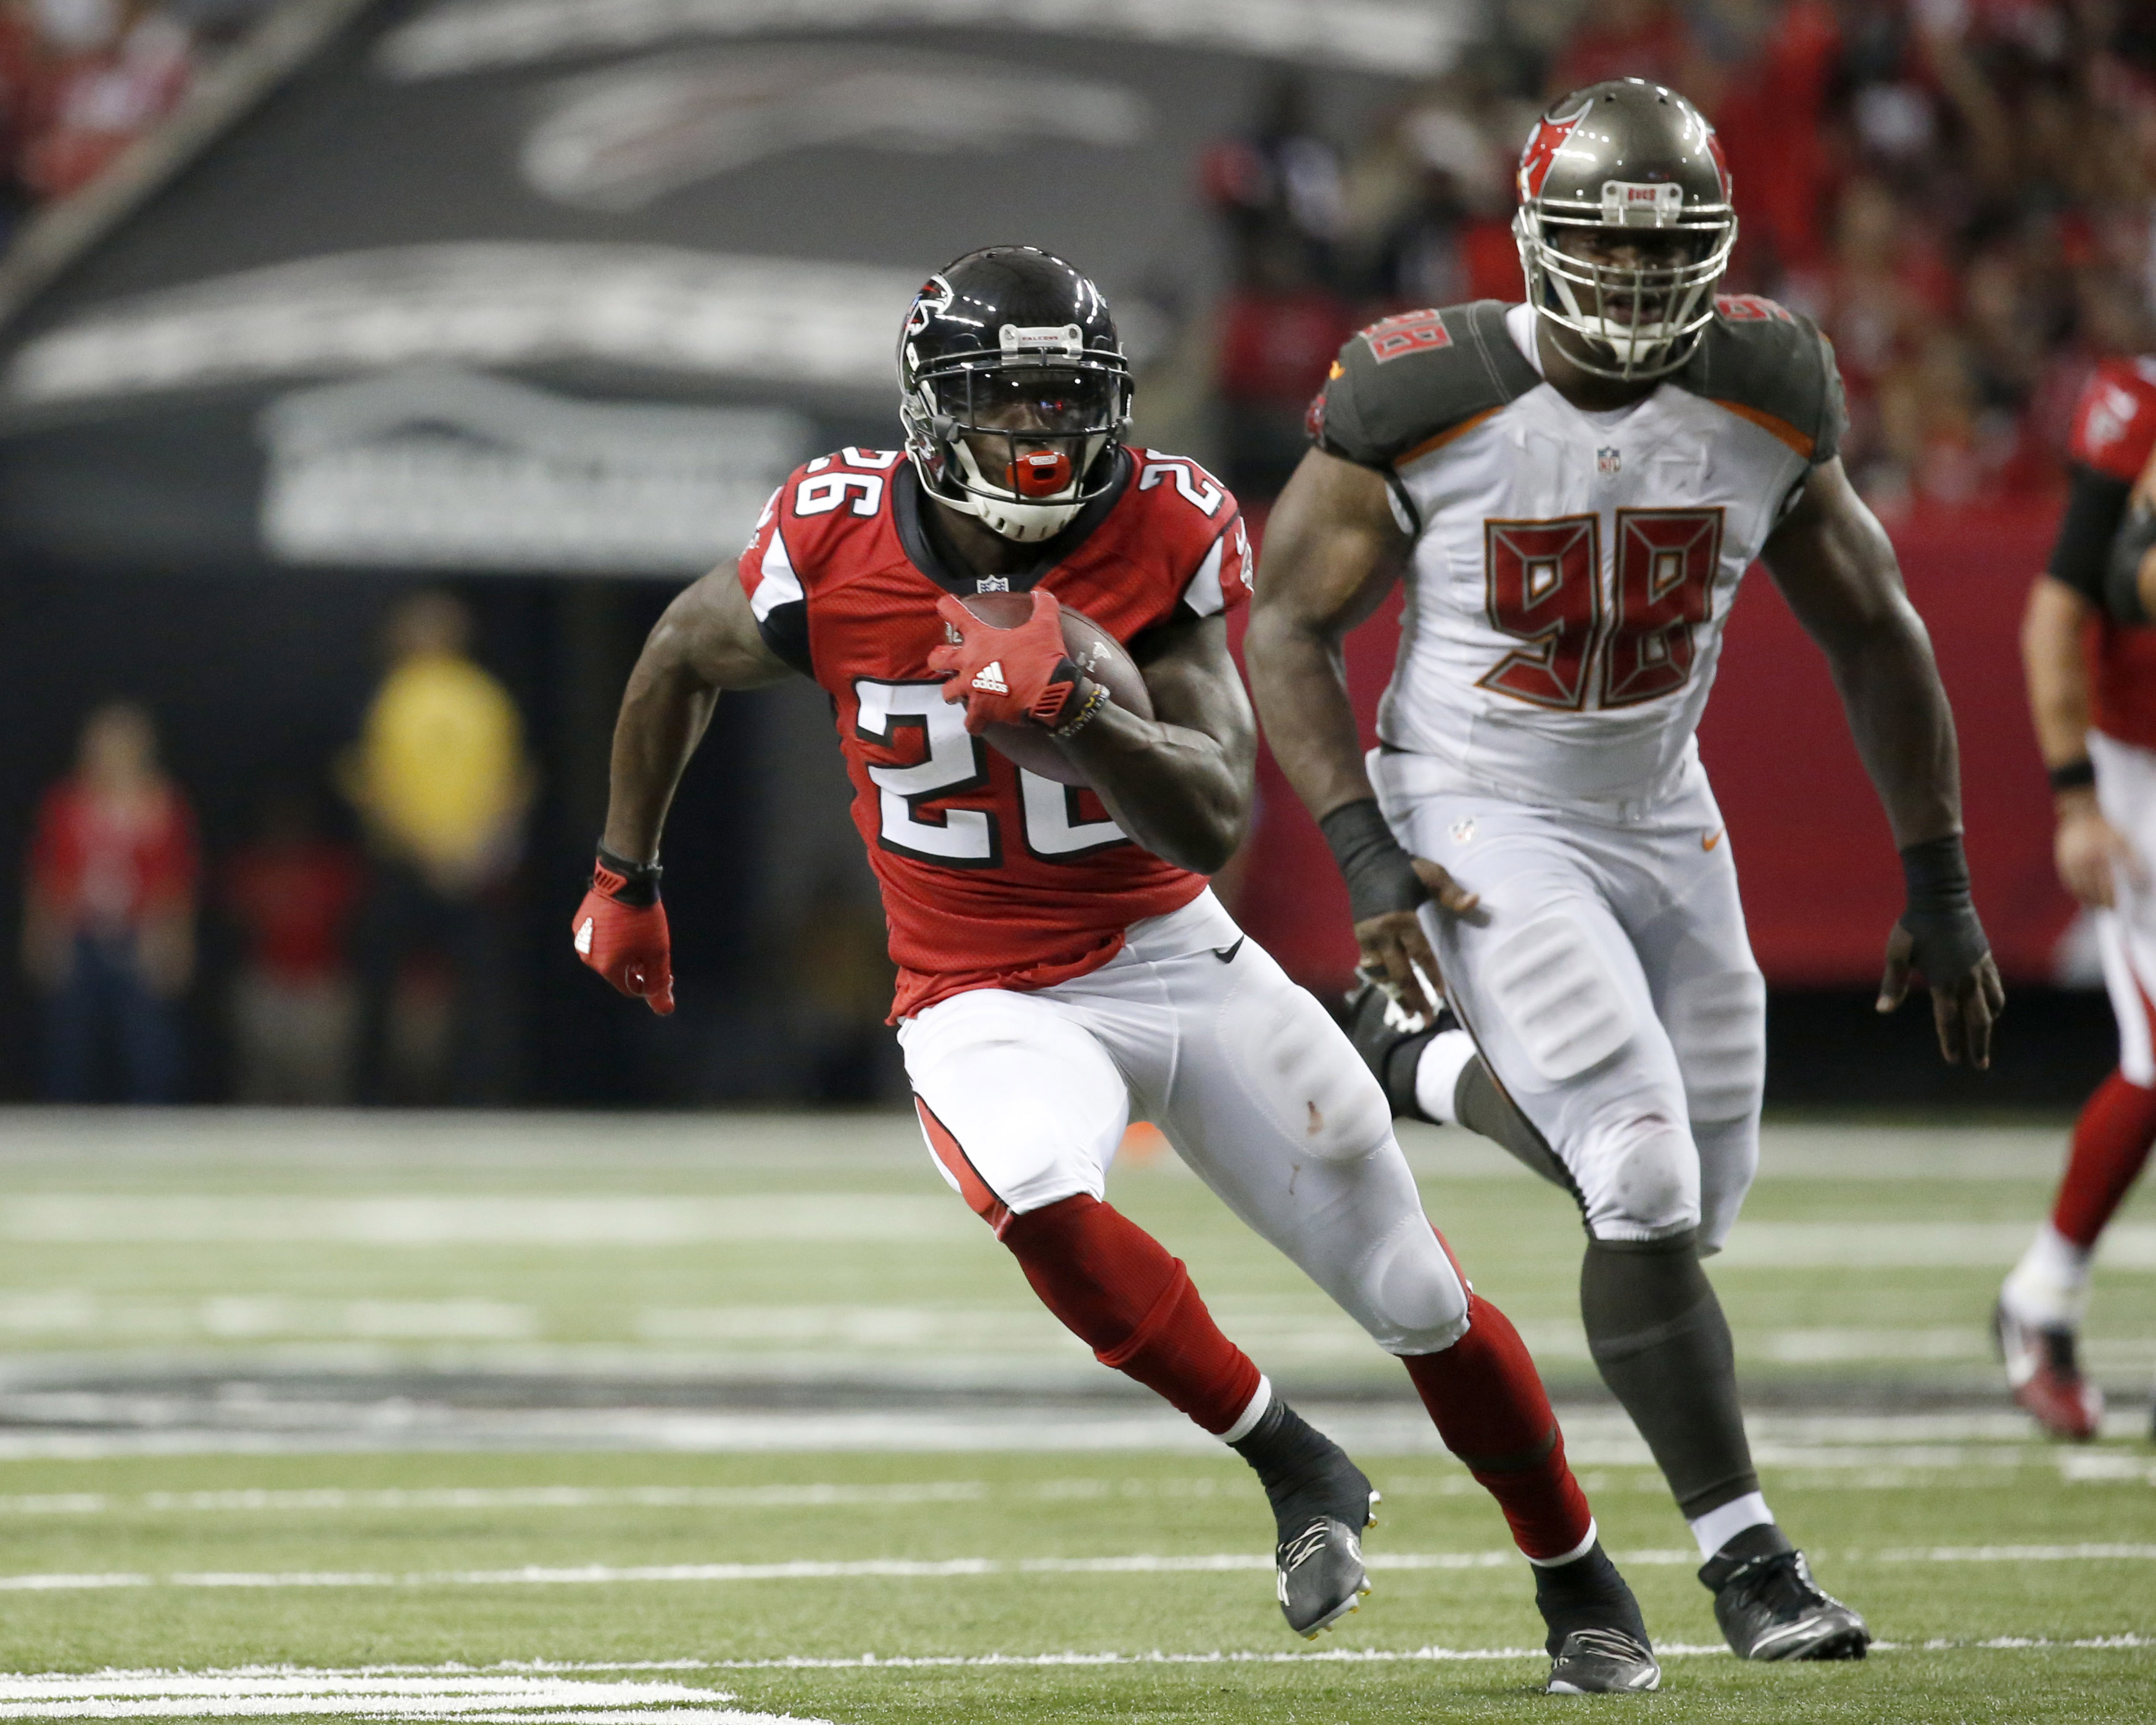 Fantasy football waiver wire: 5 running backs to look at for Week 2